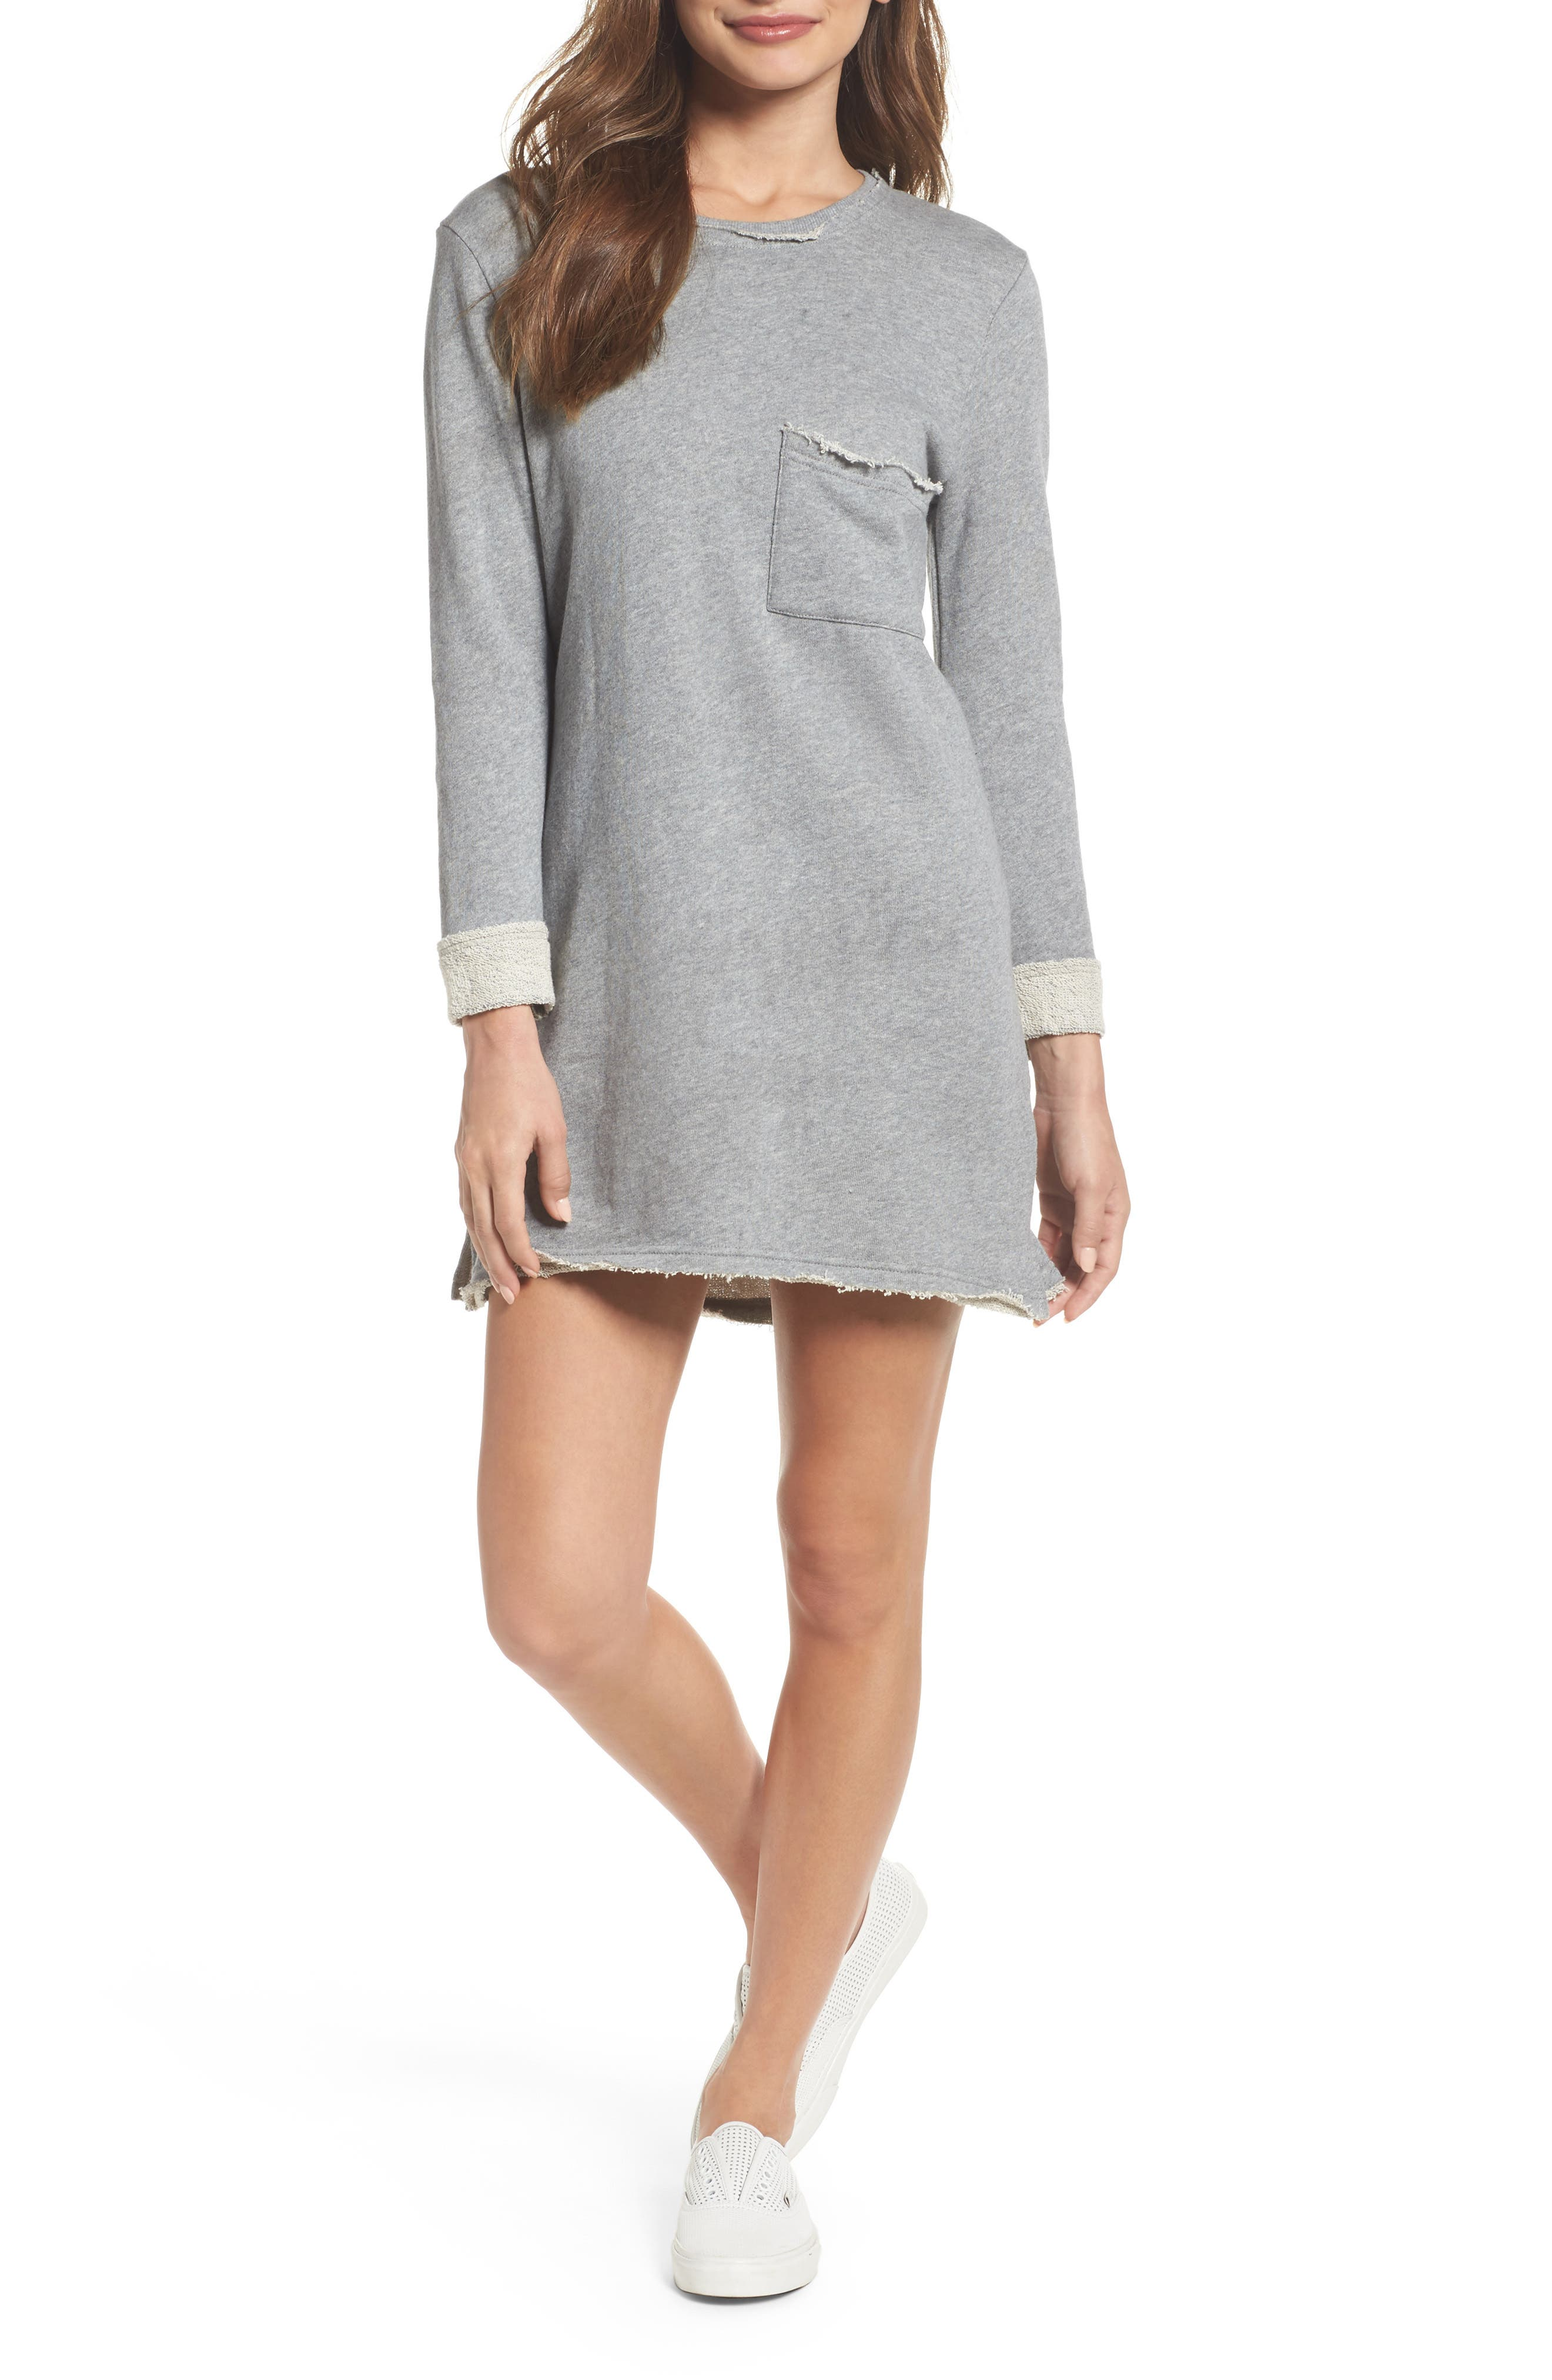 Knot Sisters Chicago T-Shirt Dress